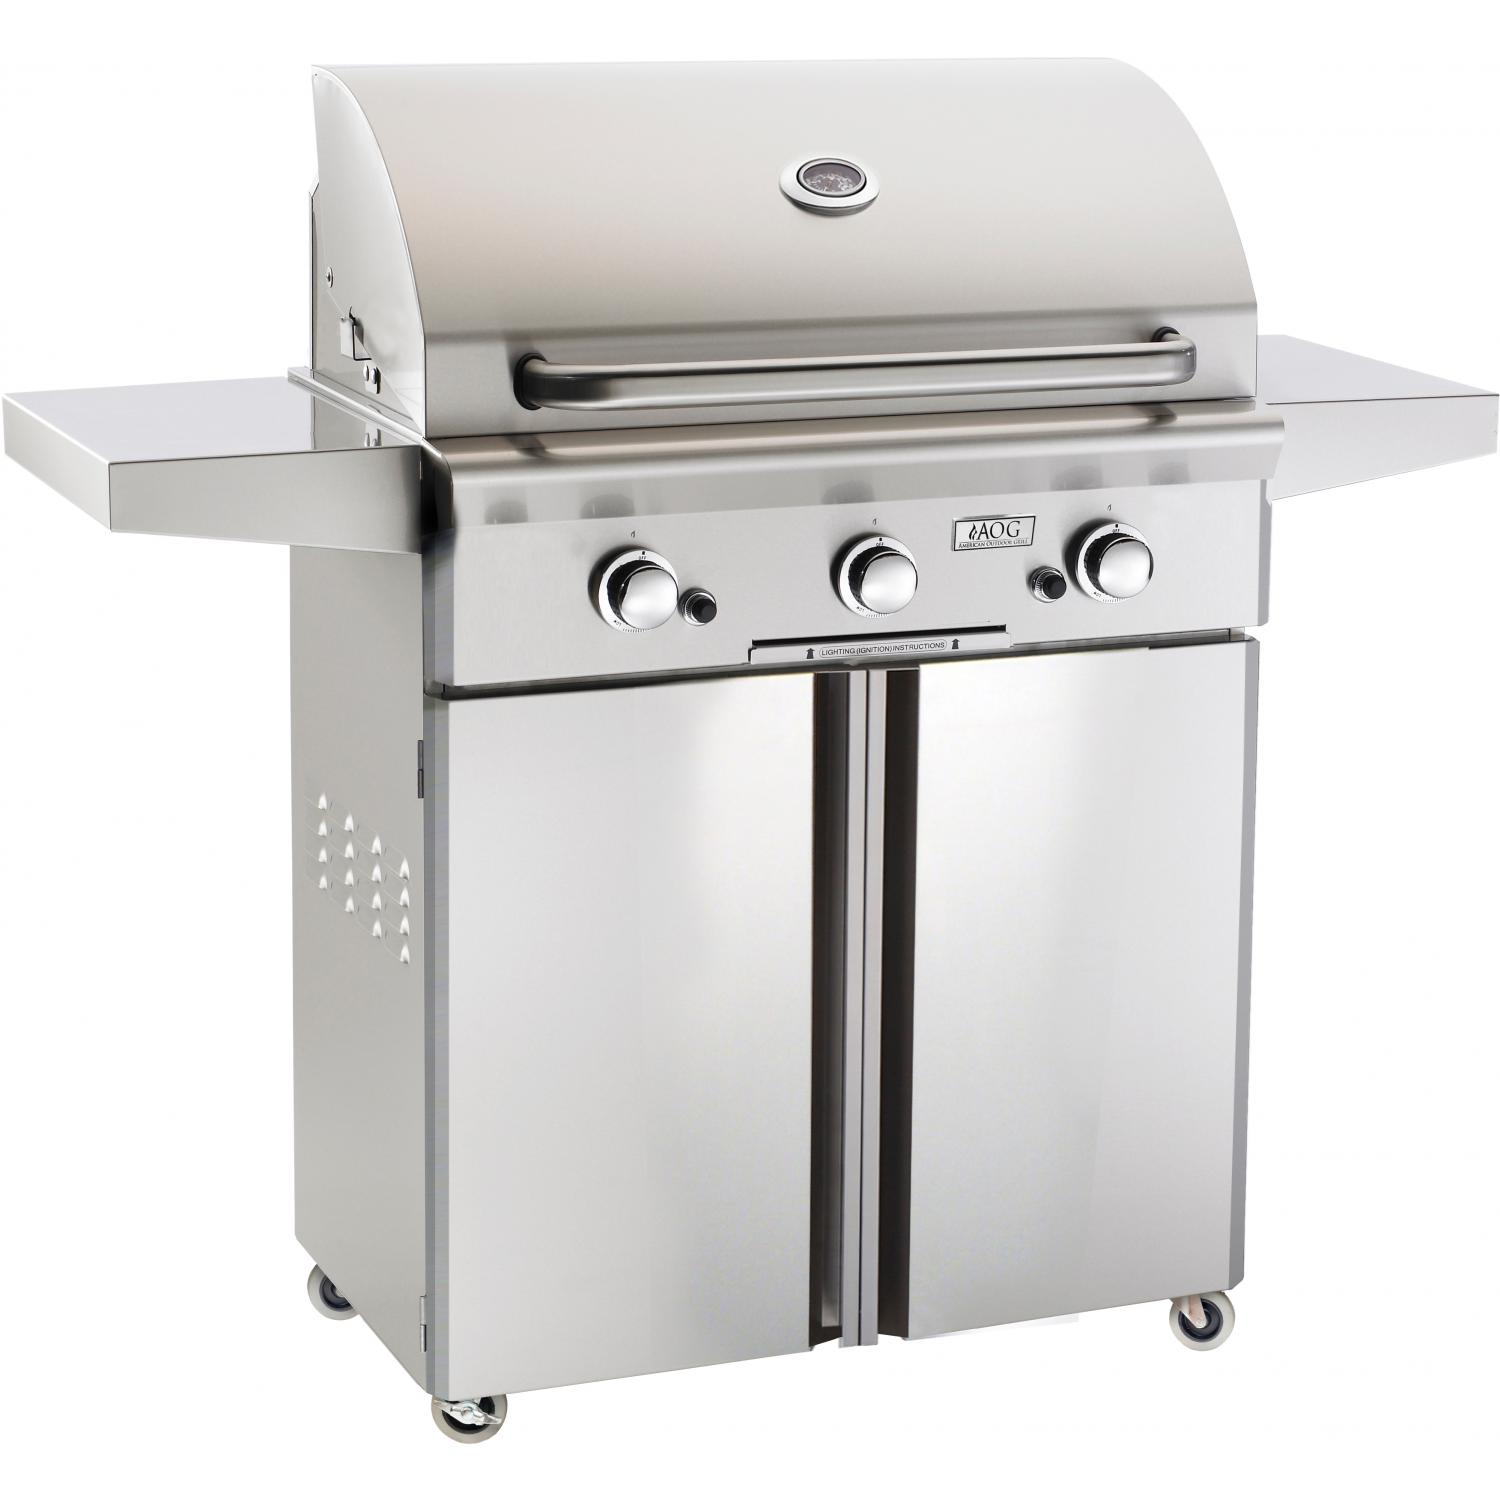 AOG American Outdoor Grill 30 Inch Natural Gas Grill On Cart at Sears.com